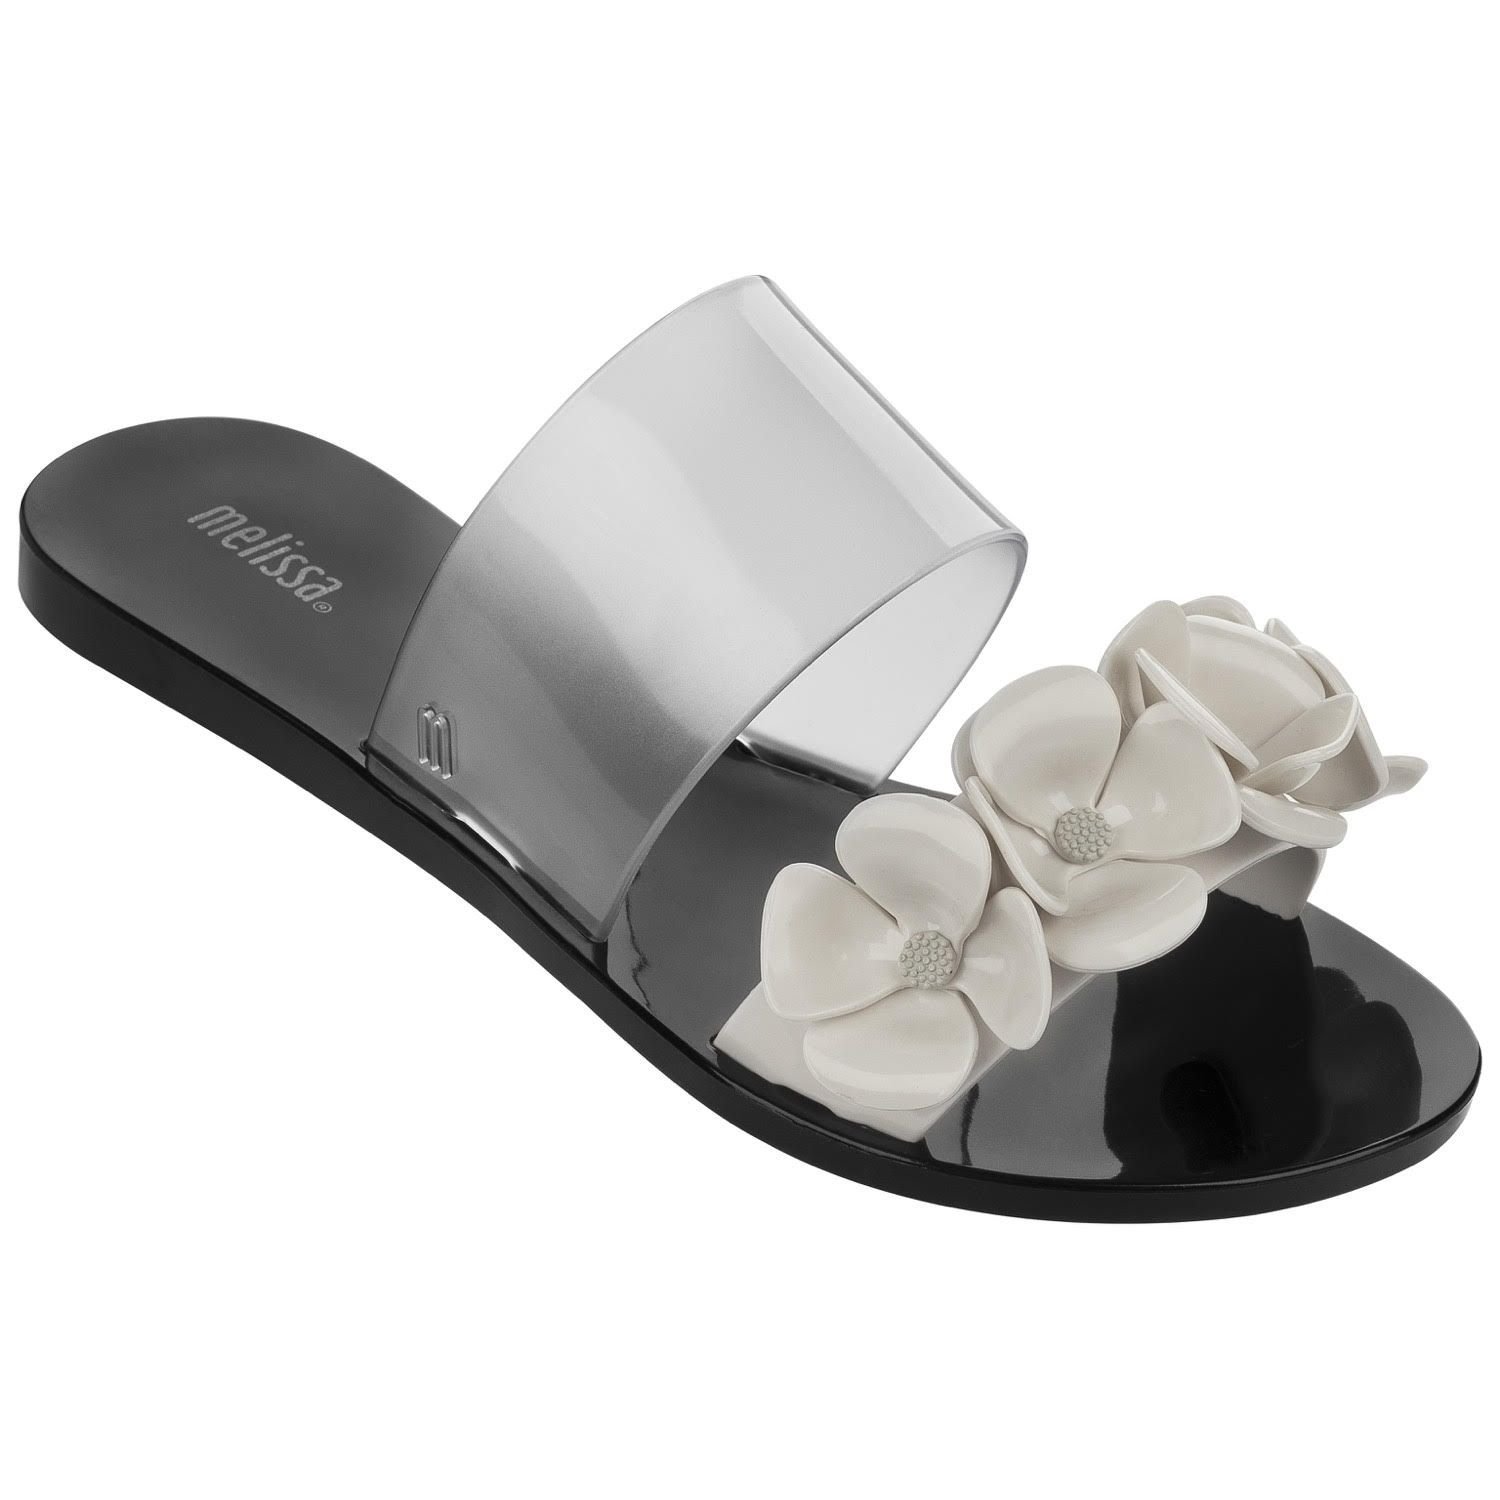 689bedacc943aa Magnificent  Melissa  flower sandals now at  Nicci  NicciSummer15  shoes   love  black    white